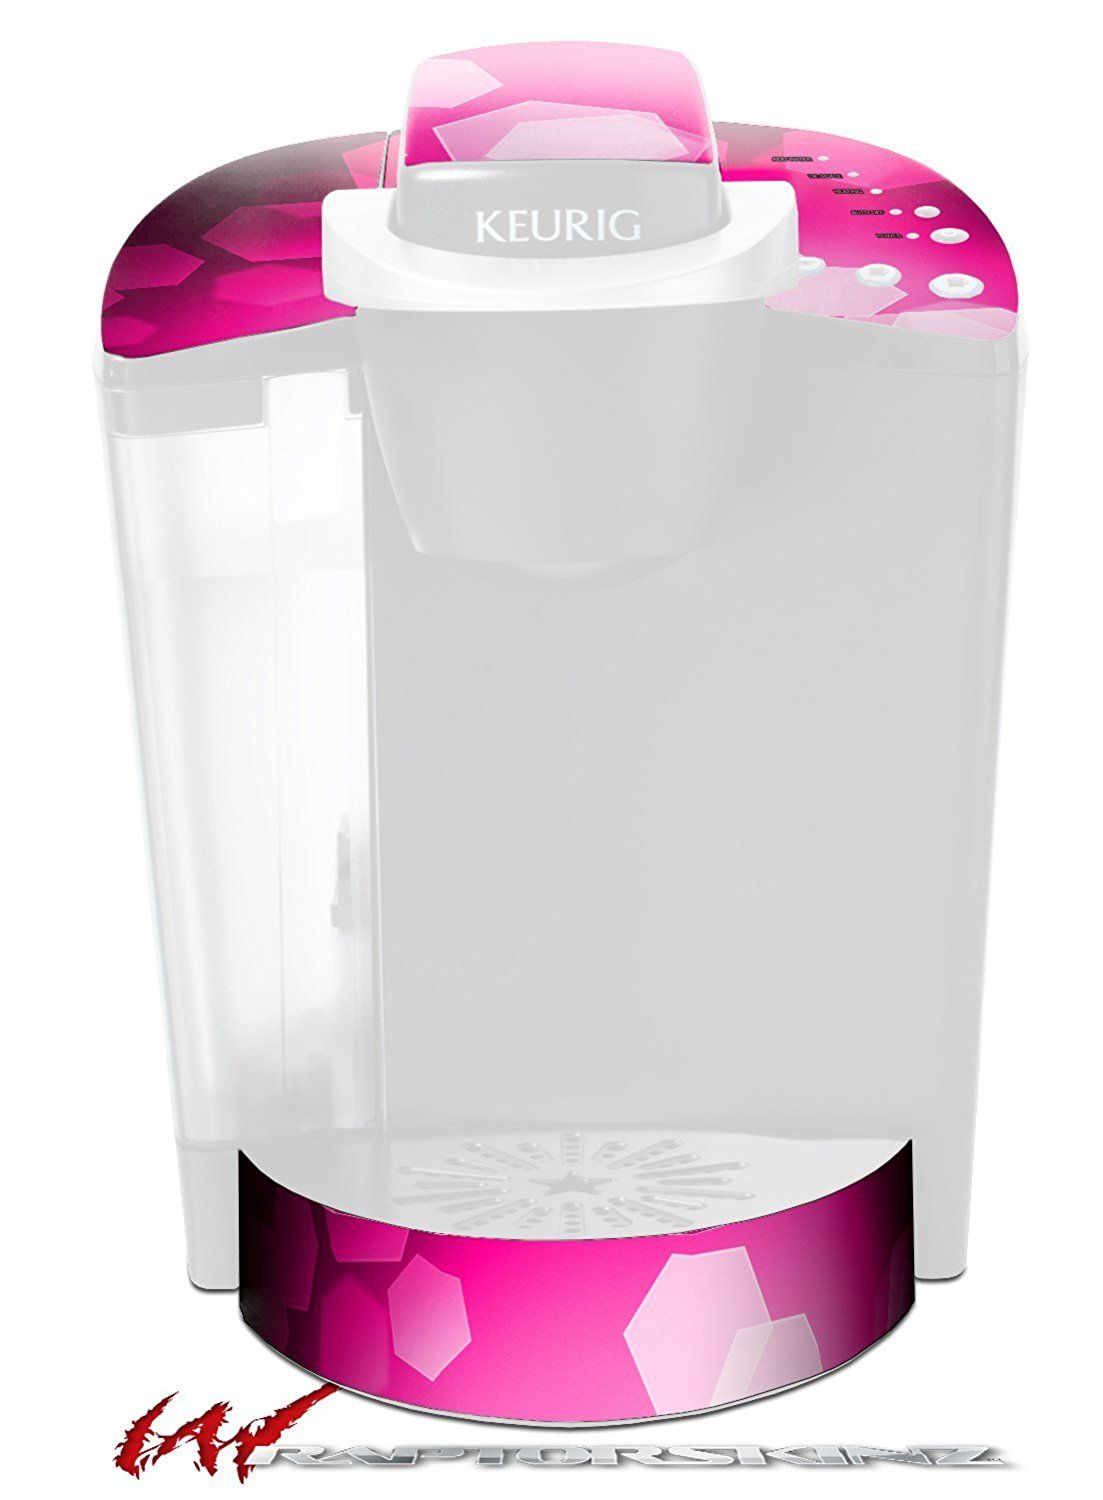 Bokeh Hex Hot Pink Decal Style Vinyl Skin Fits Keurig K40 Elite